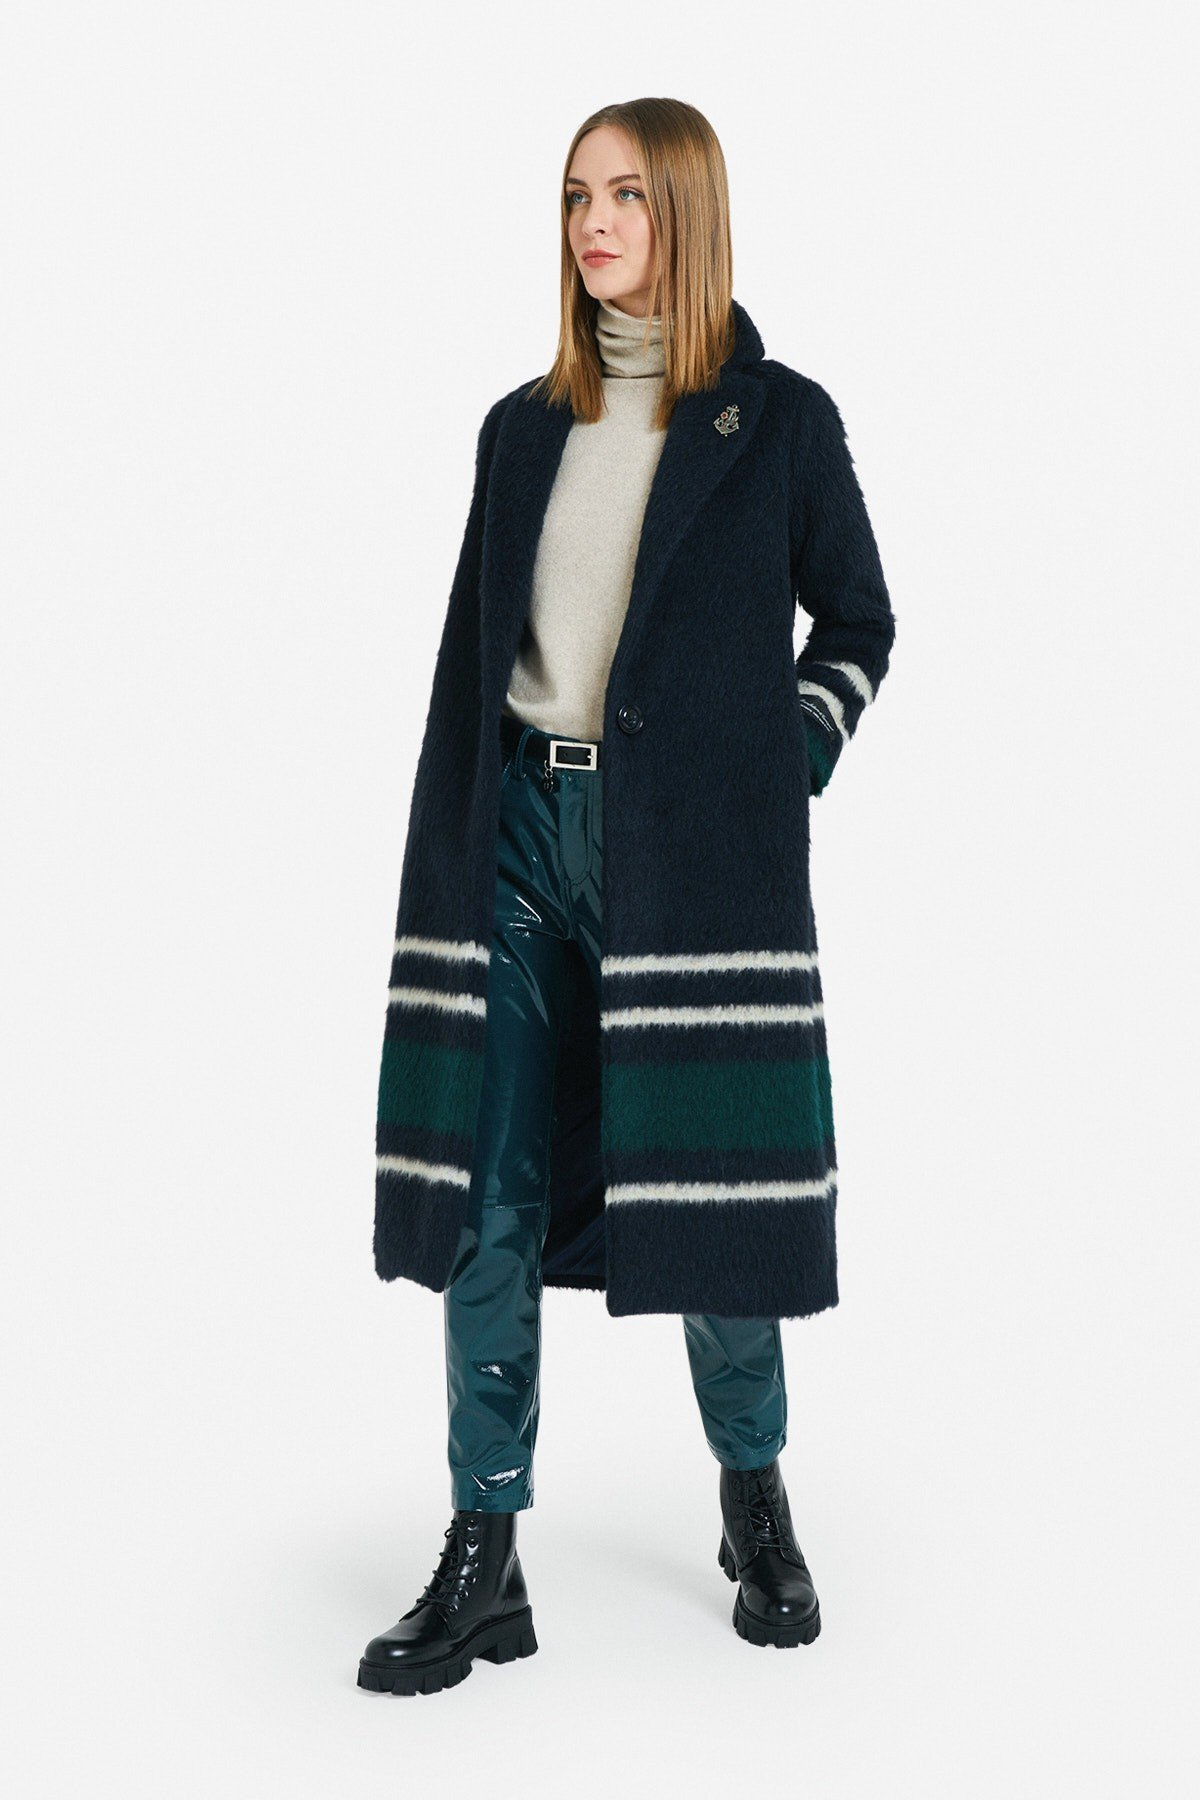 1-button coat with stripes